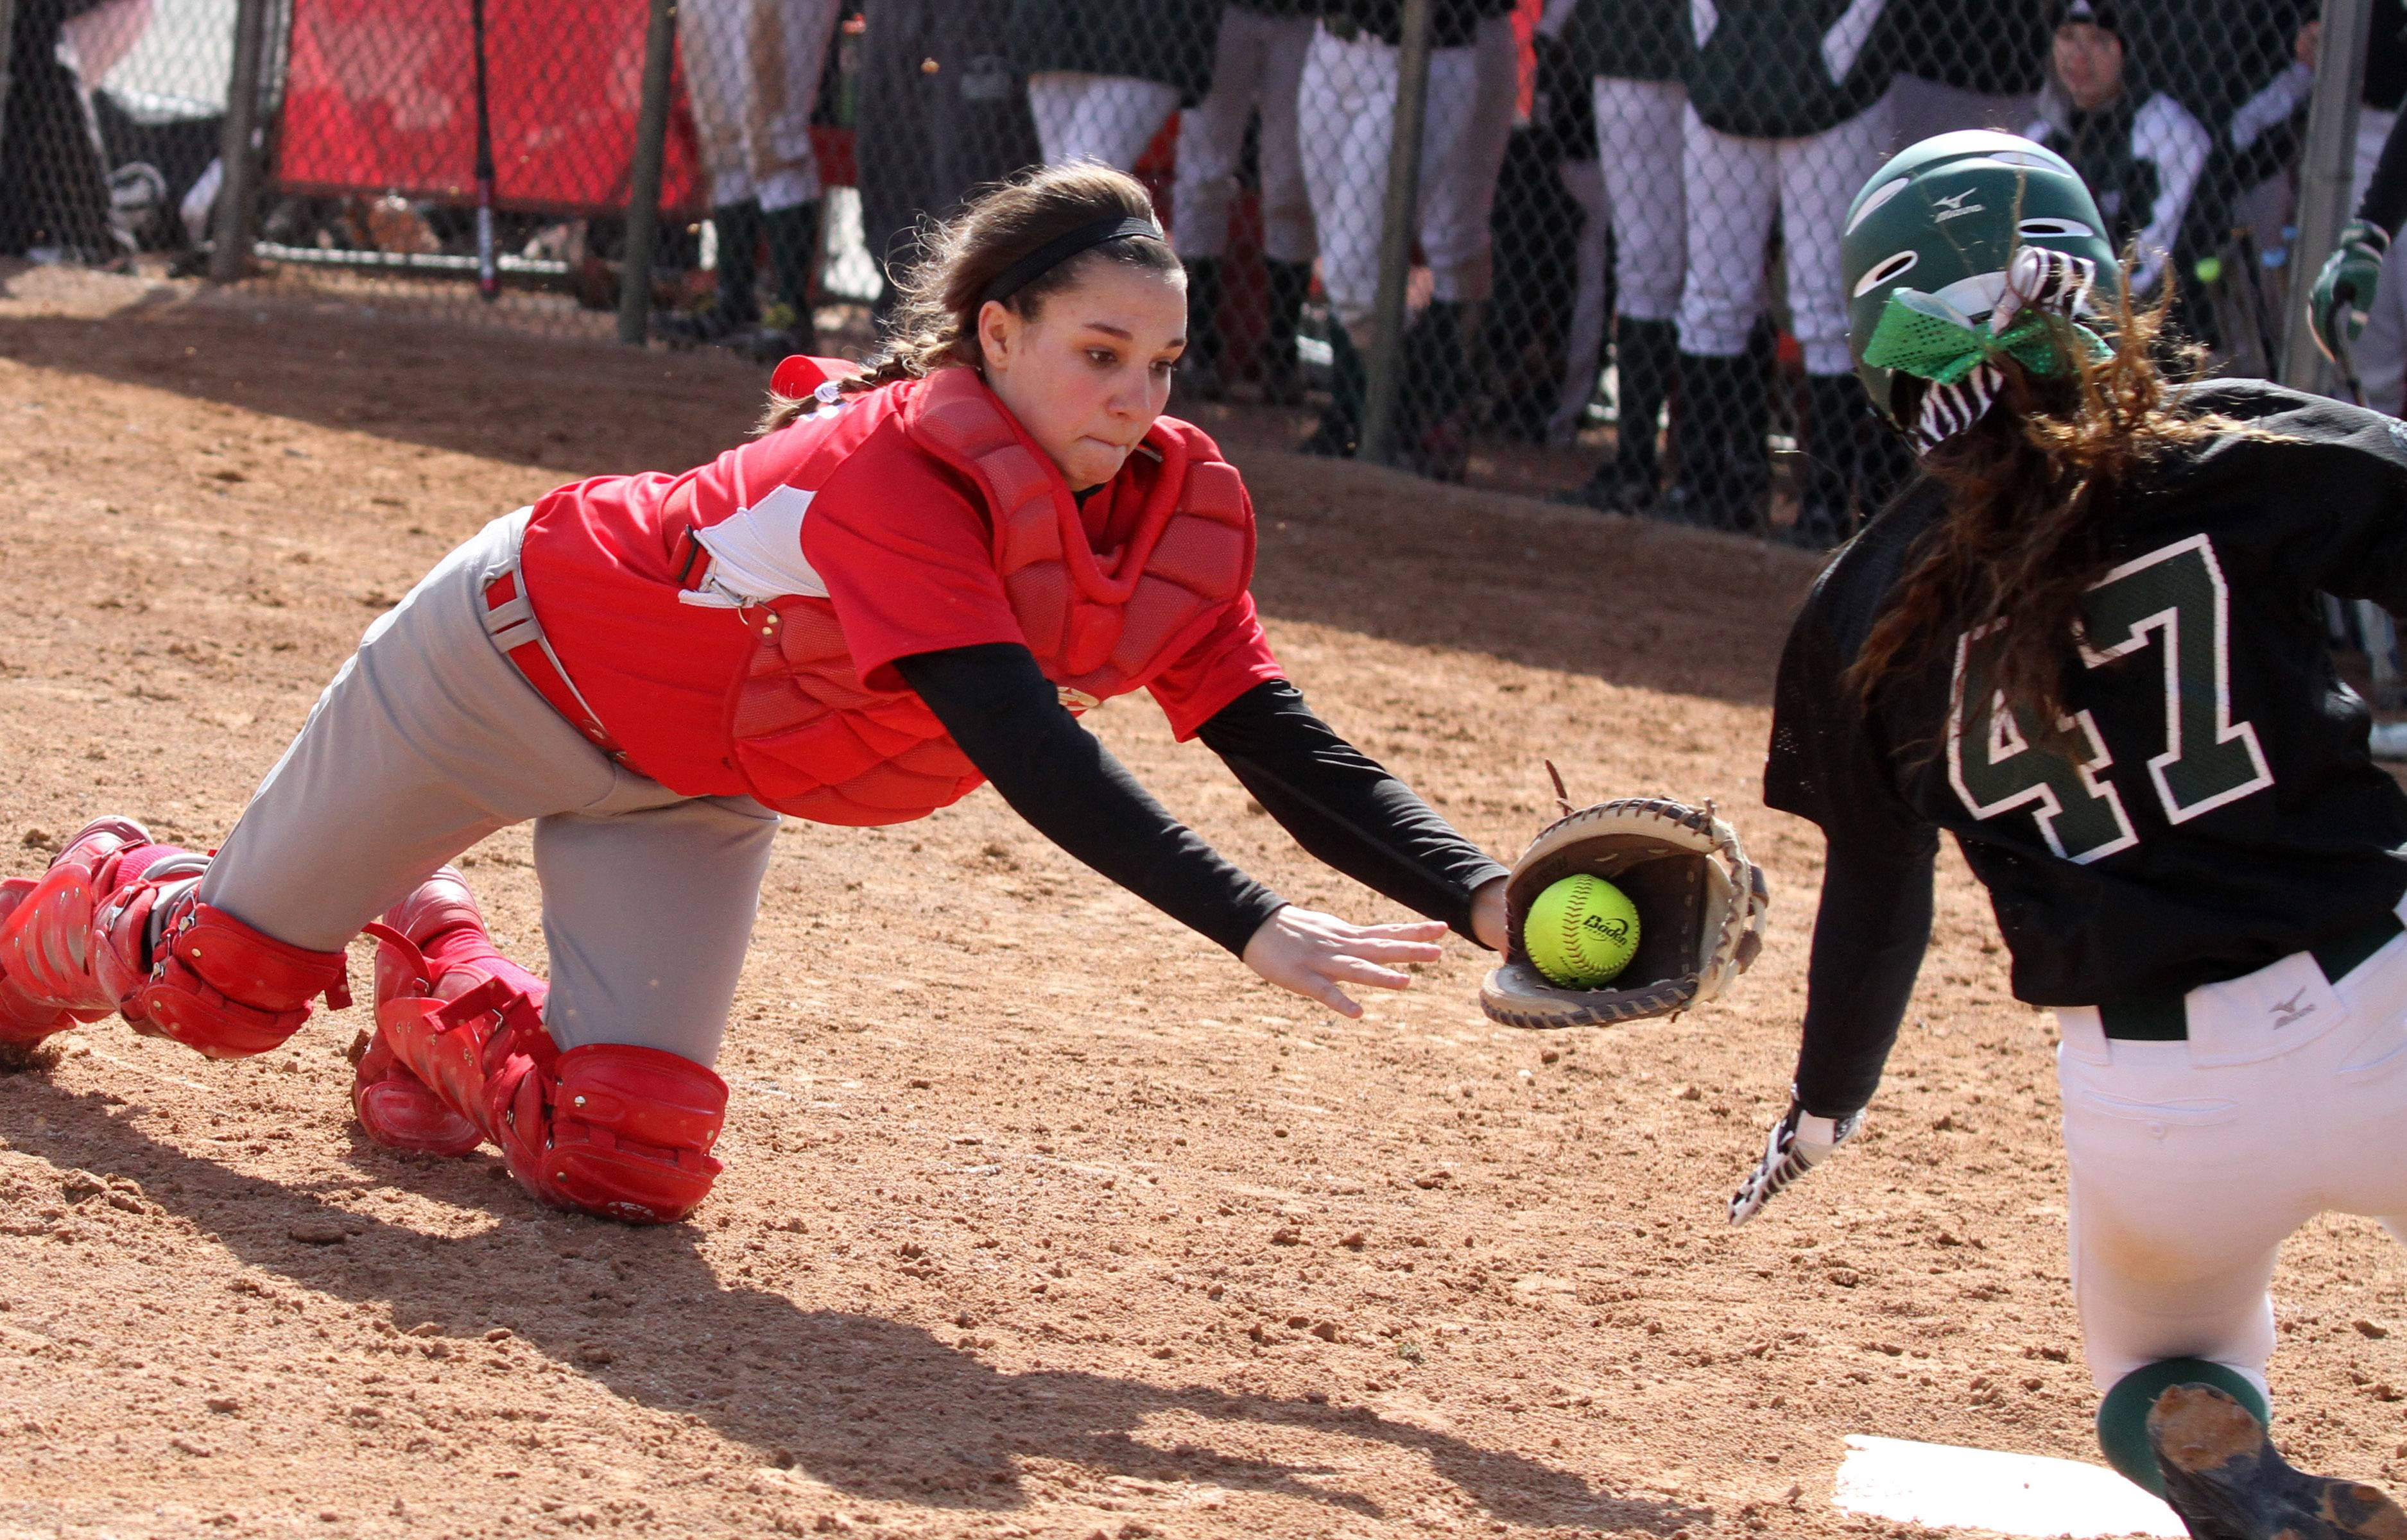 Mundelein catcher Maggie Mahar reaches for Elk Grove's Aleece Duffy as she slides into home plate safely at the Fields of Dreams on Saturday in Barrington.